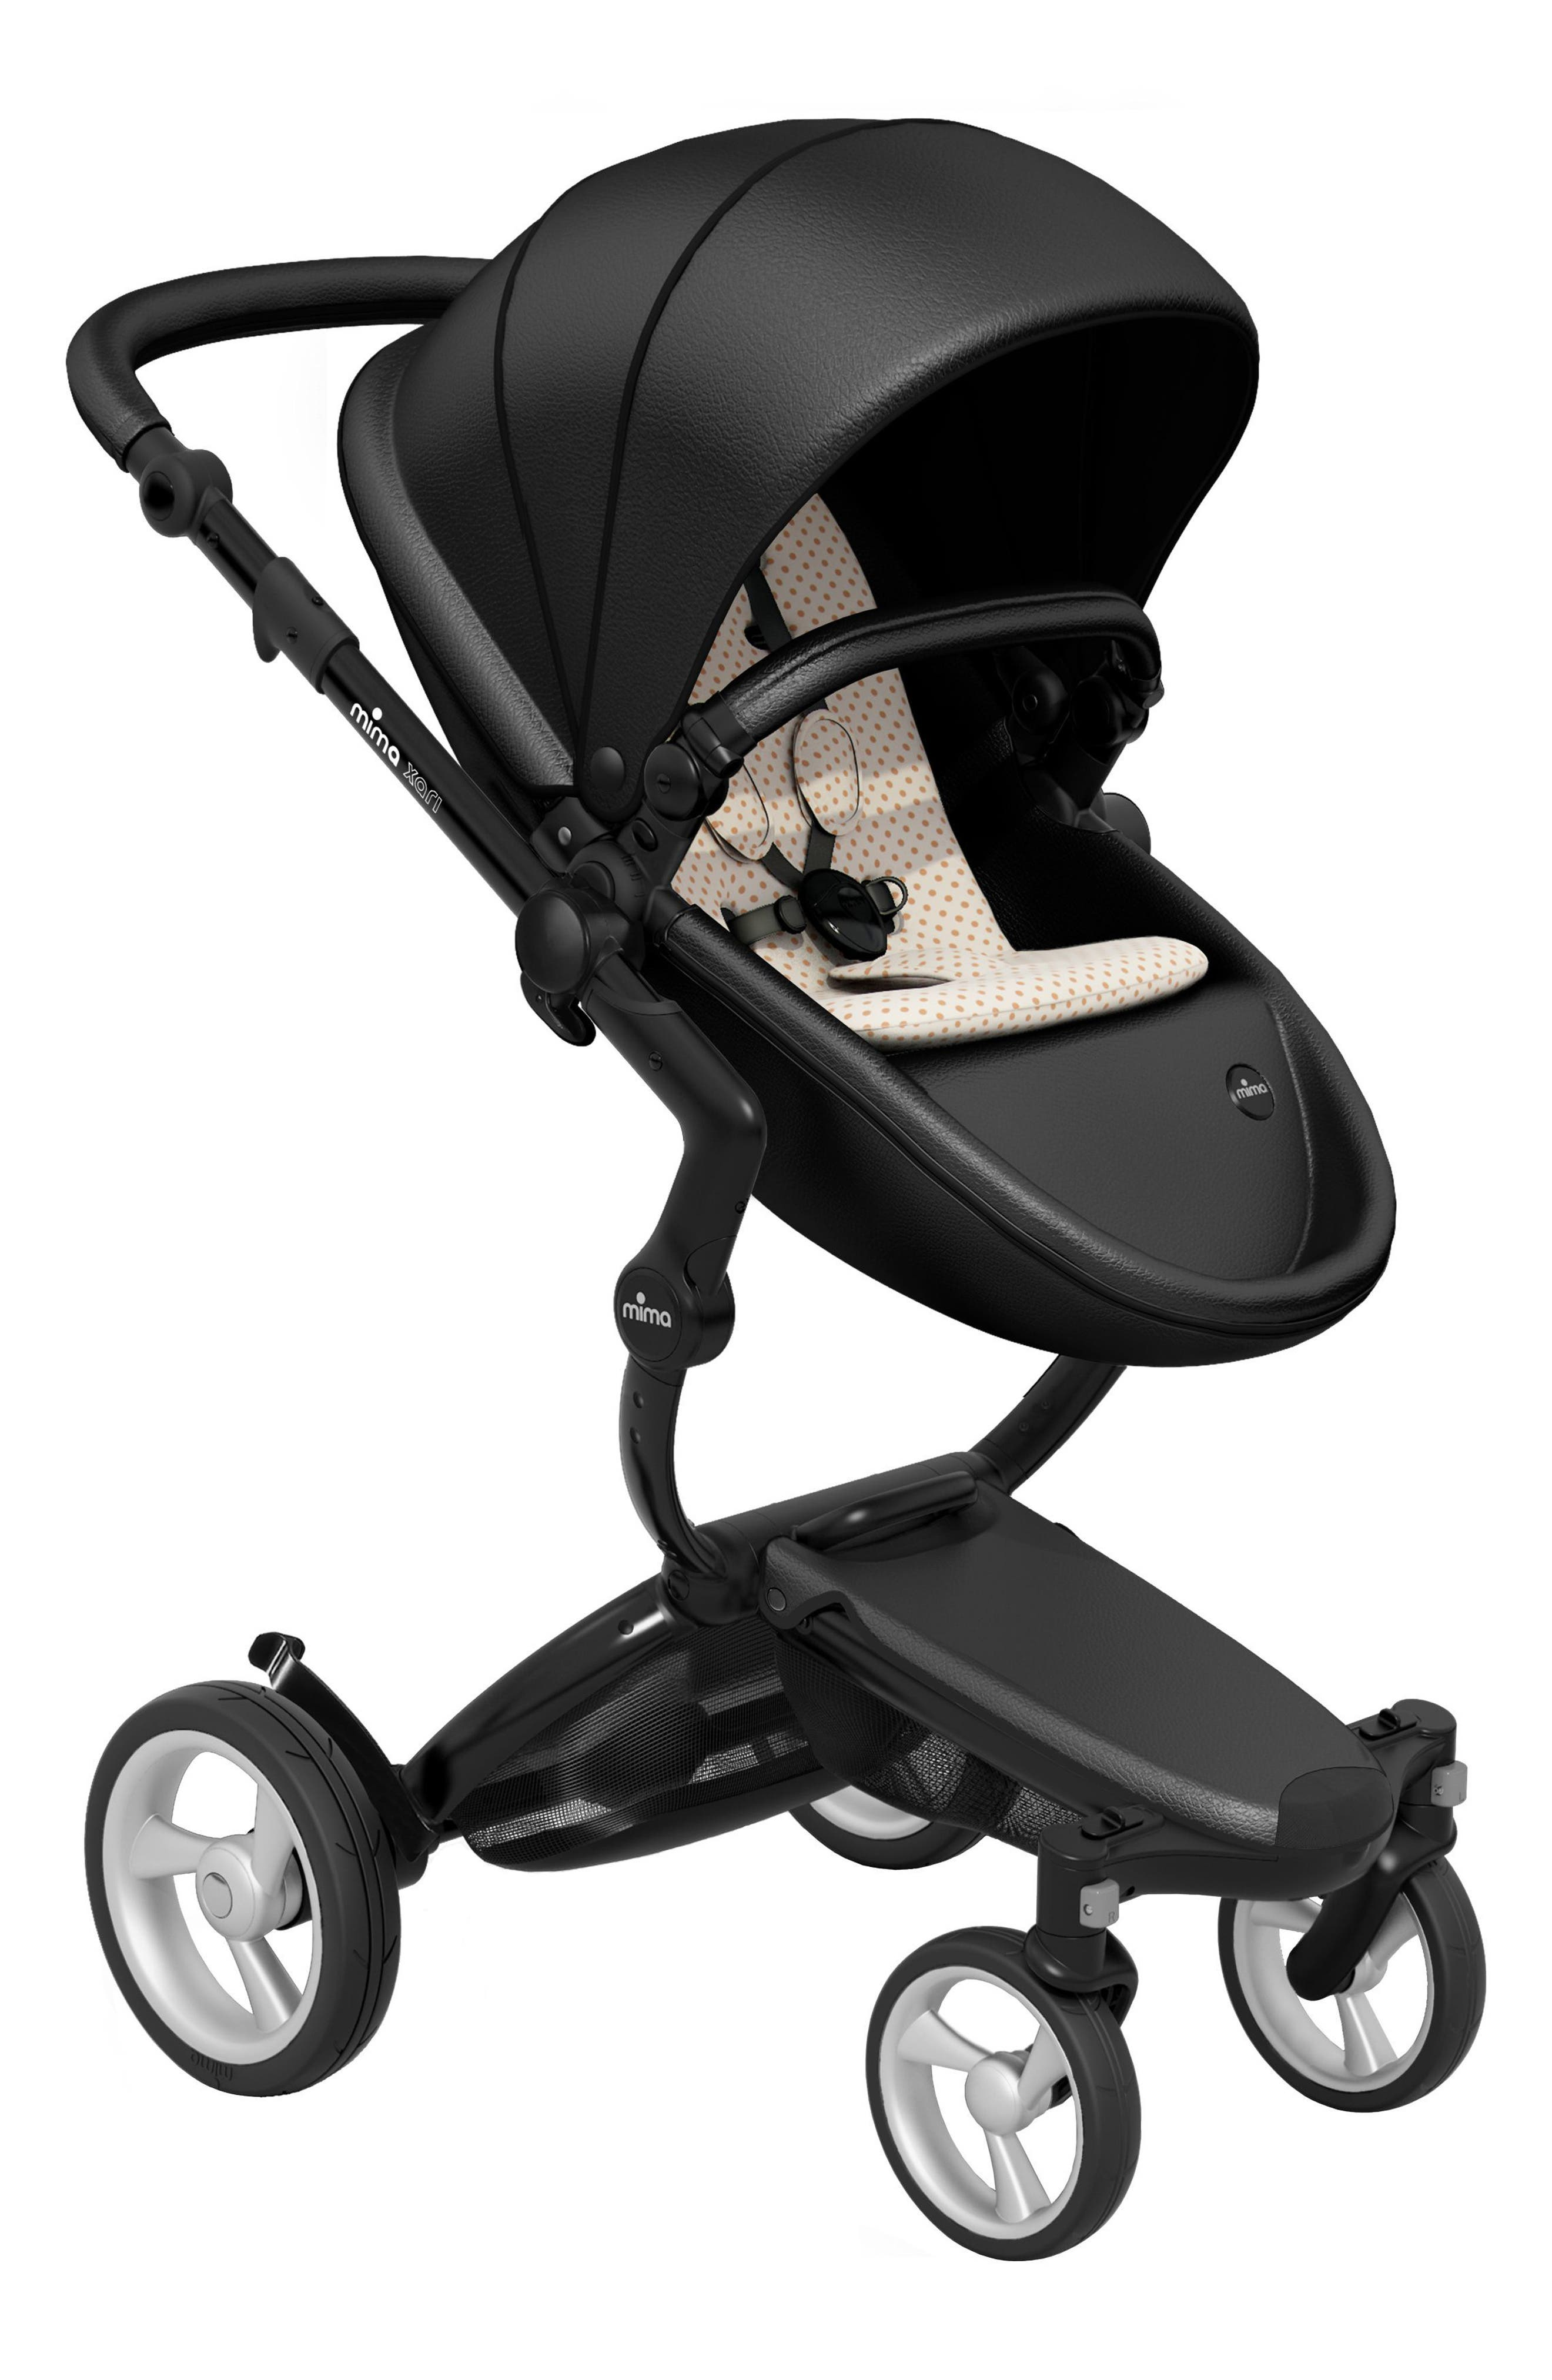 Infant Mima Xari Black Chassis Stroller With Reversible Reclining Seat  Carrycot Size One Size  Black